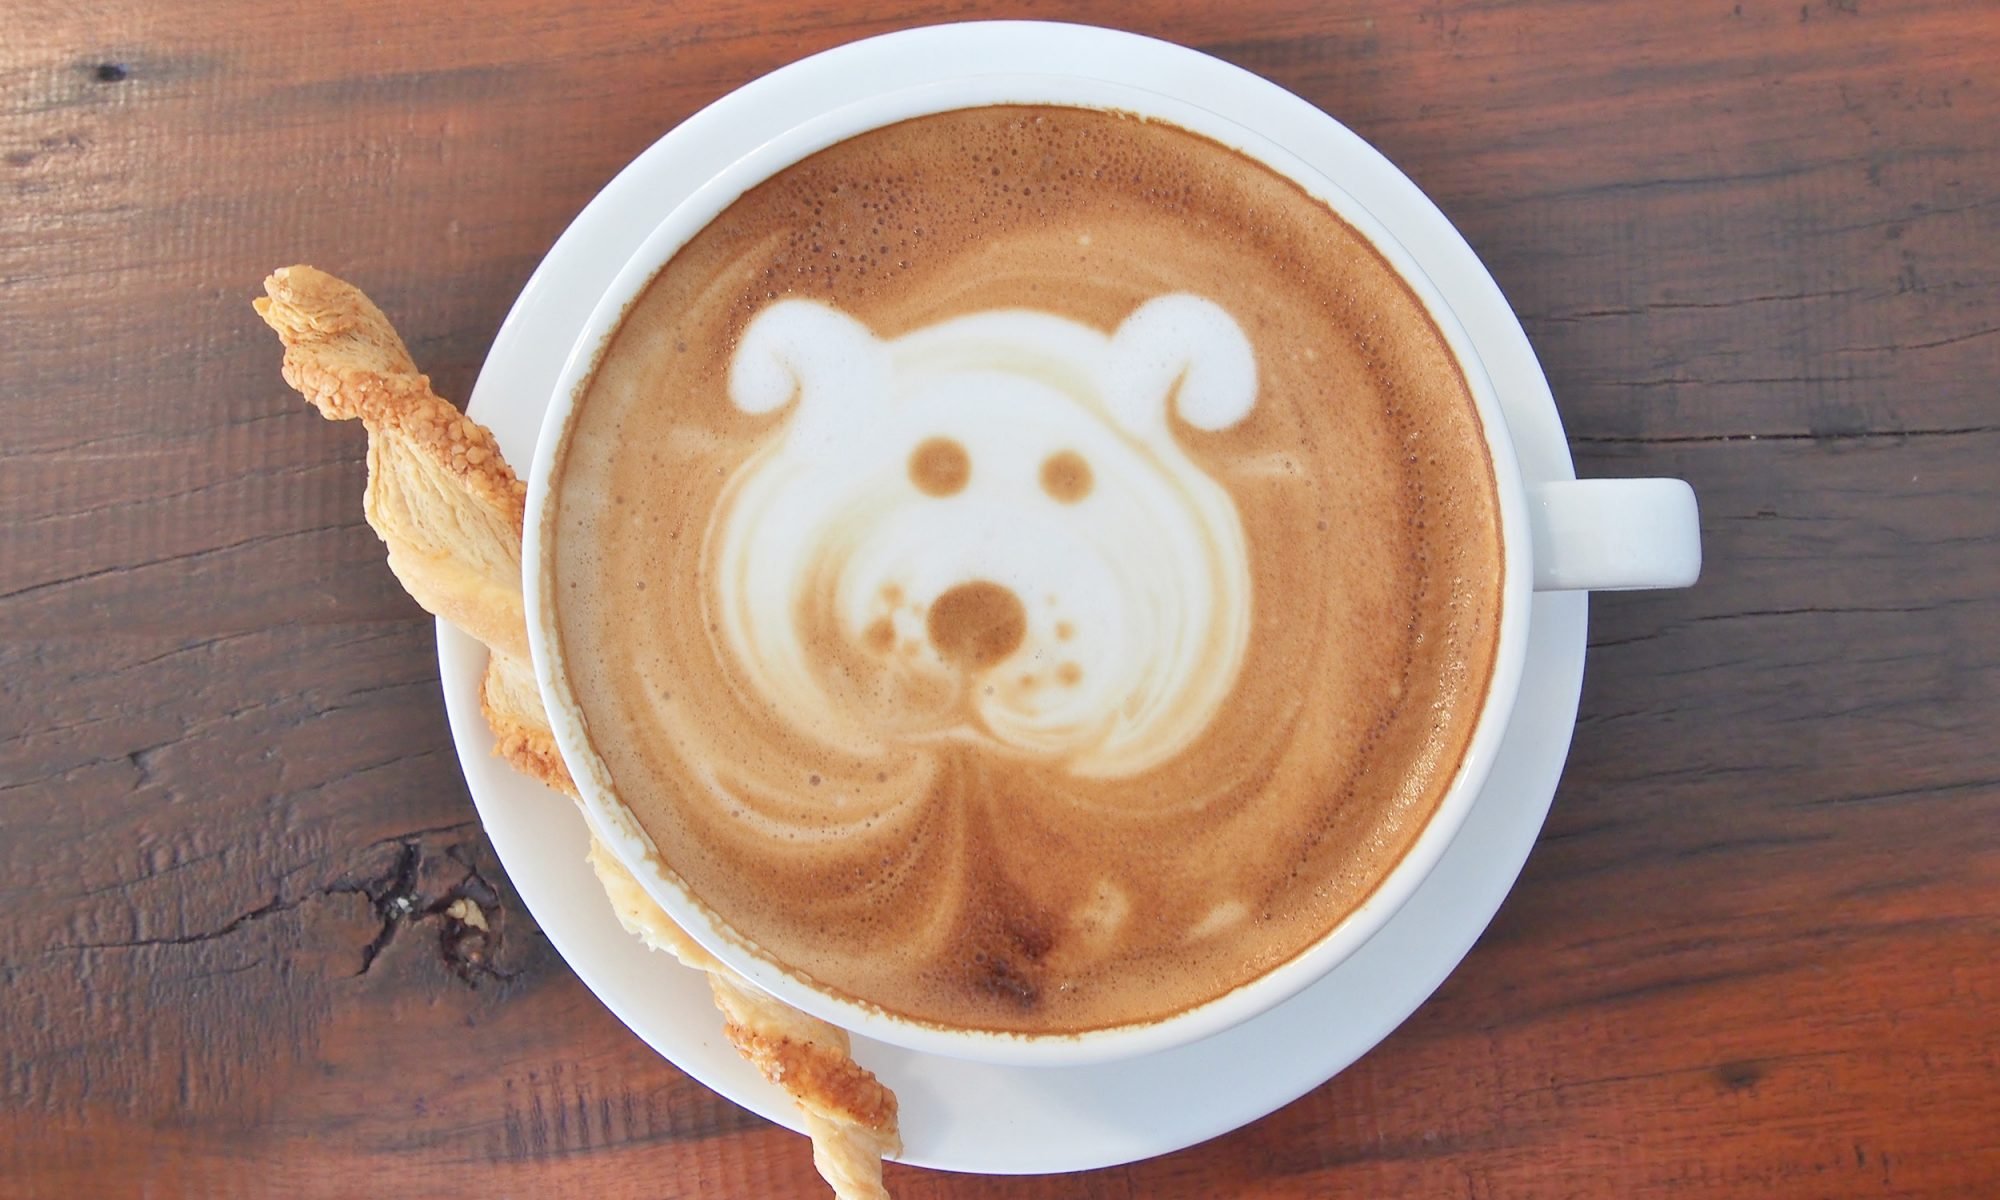 EC: The Cutest Latte Art Dogs of Instagram